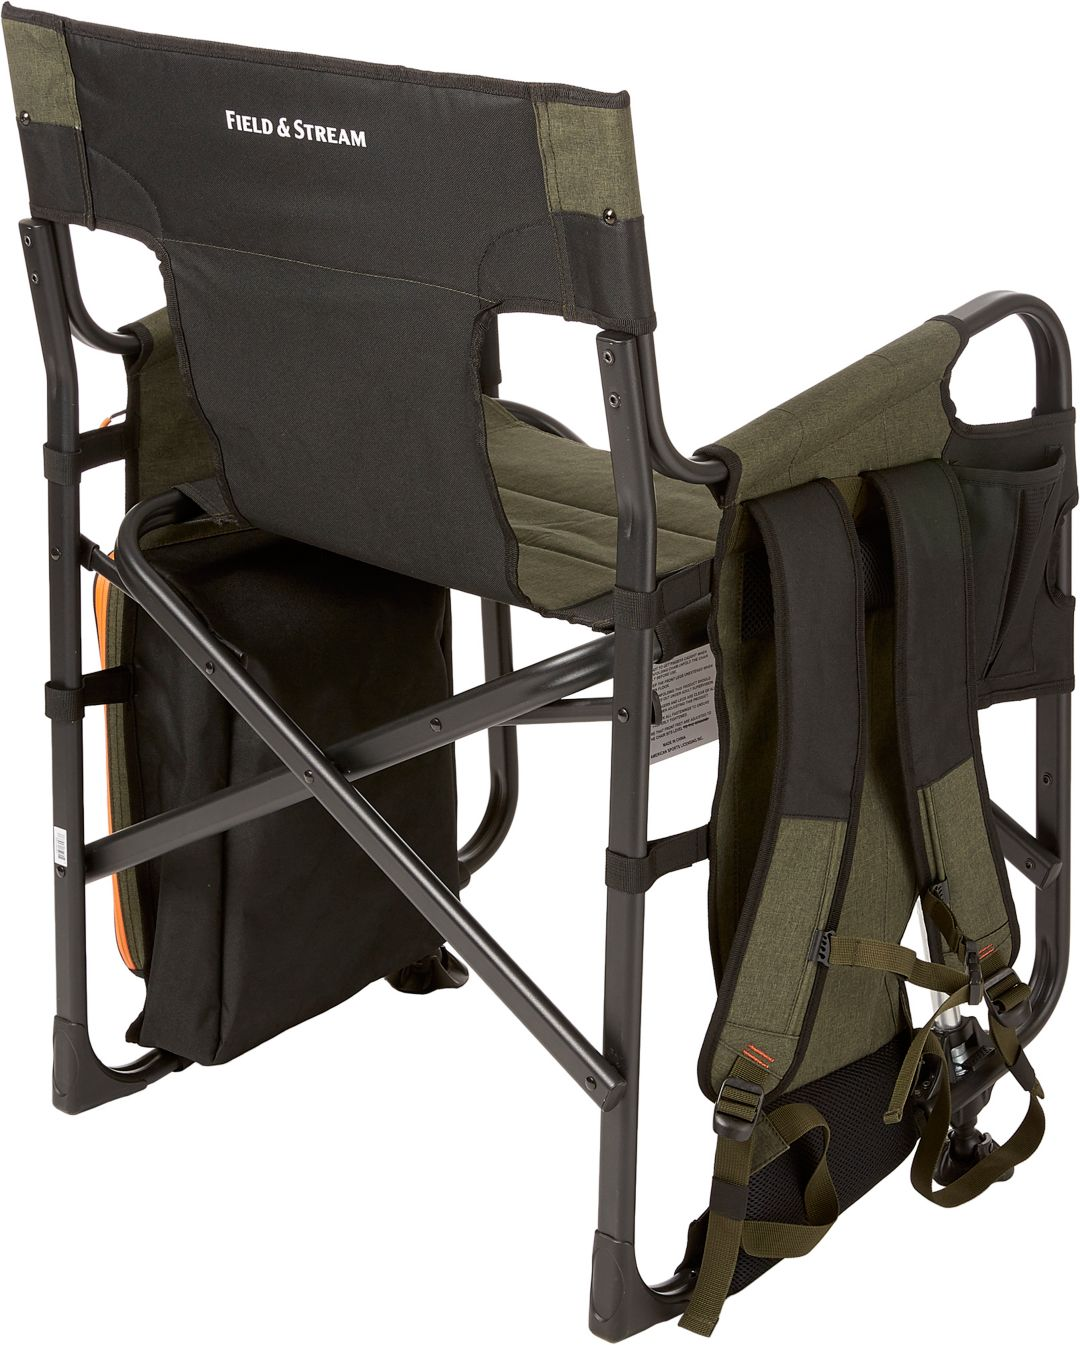 Stupendous Field Stream Ultimate Tackle Chair Gmtry Best Dining Table And Chair Ideas Images Gmtryco